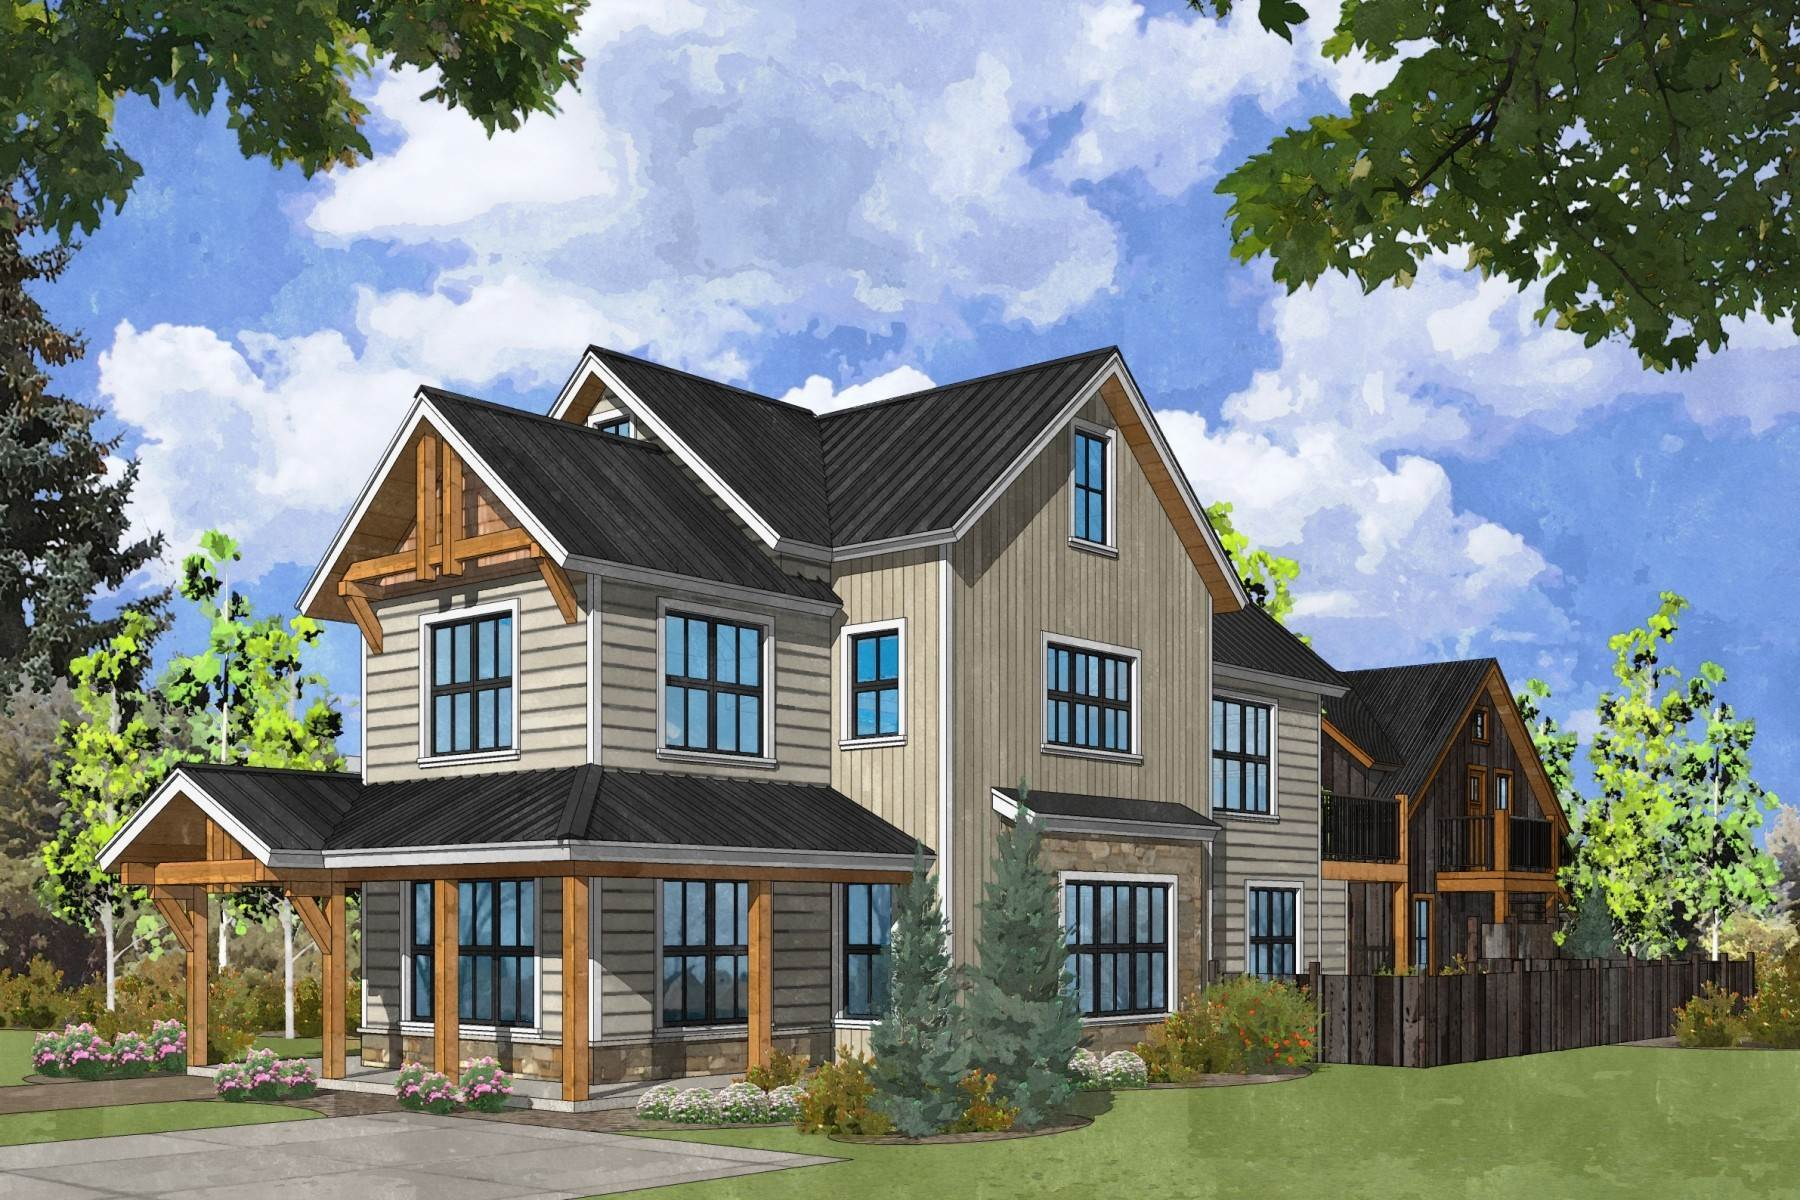 Single Family Homes for Active at Outstanding New Five-Bedroom Home in Crested Butte 729 Whiterock Avenue Crested Butte, Colorado 81224 United States